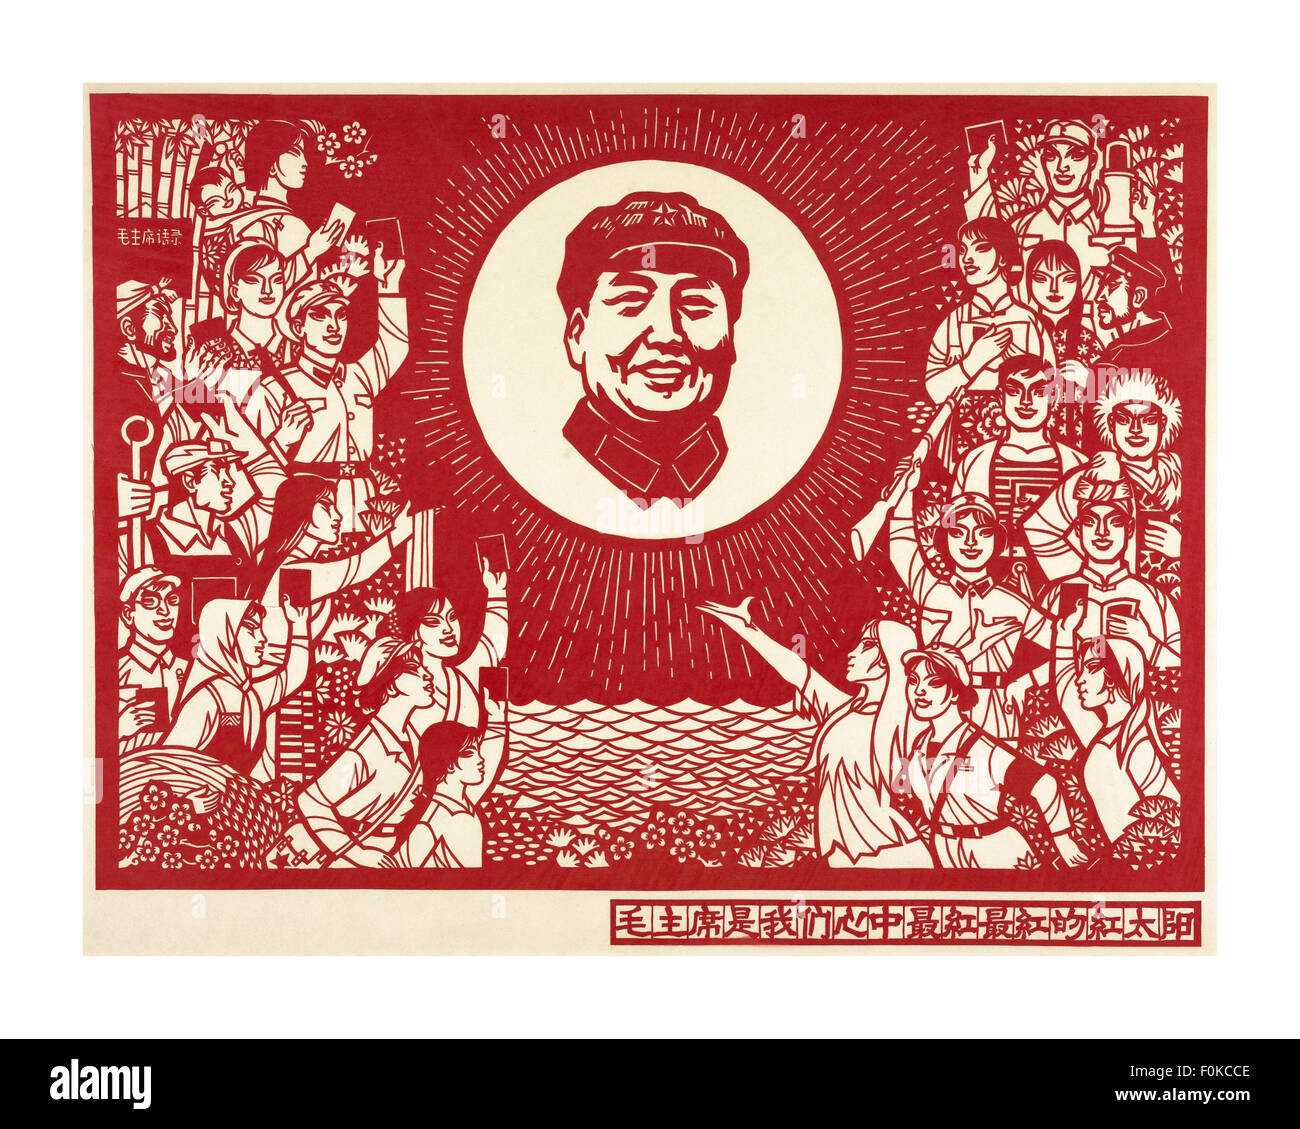 1960's Propaganda poster in the People's Republic of China of Chairman Mao with workers holding red book, - Stock Image